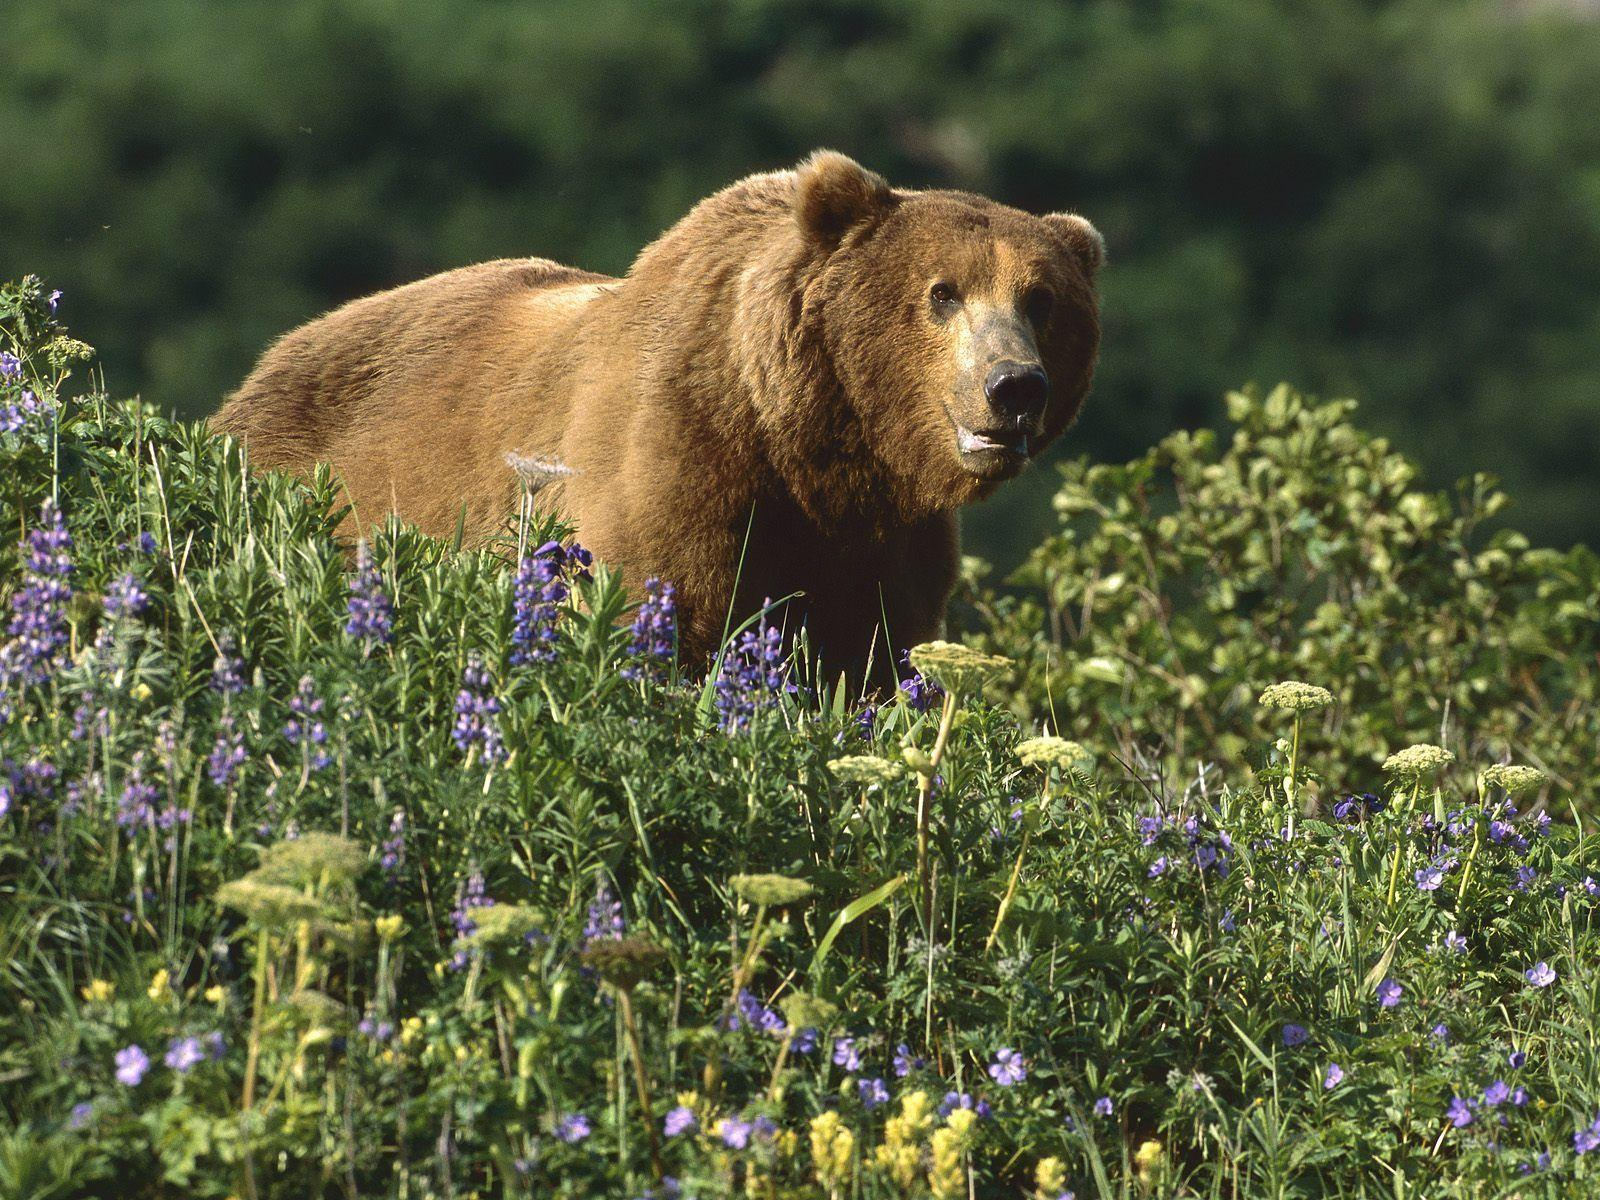 wallpaper title grizzly bear - photo #1